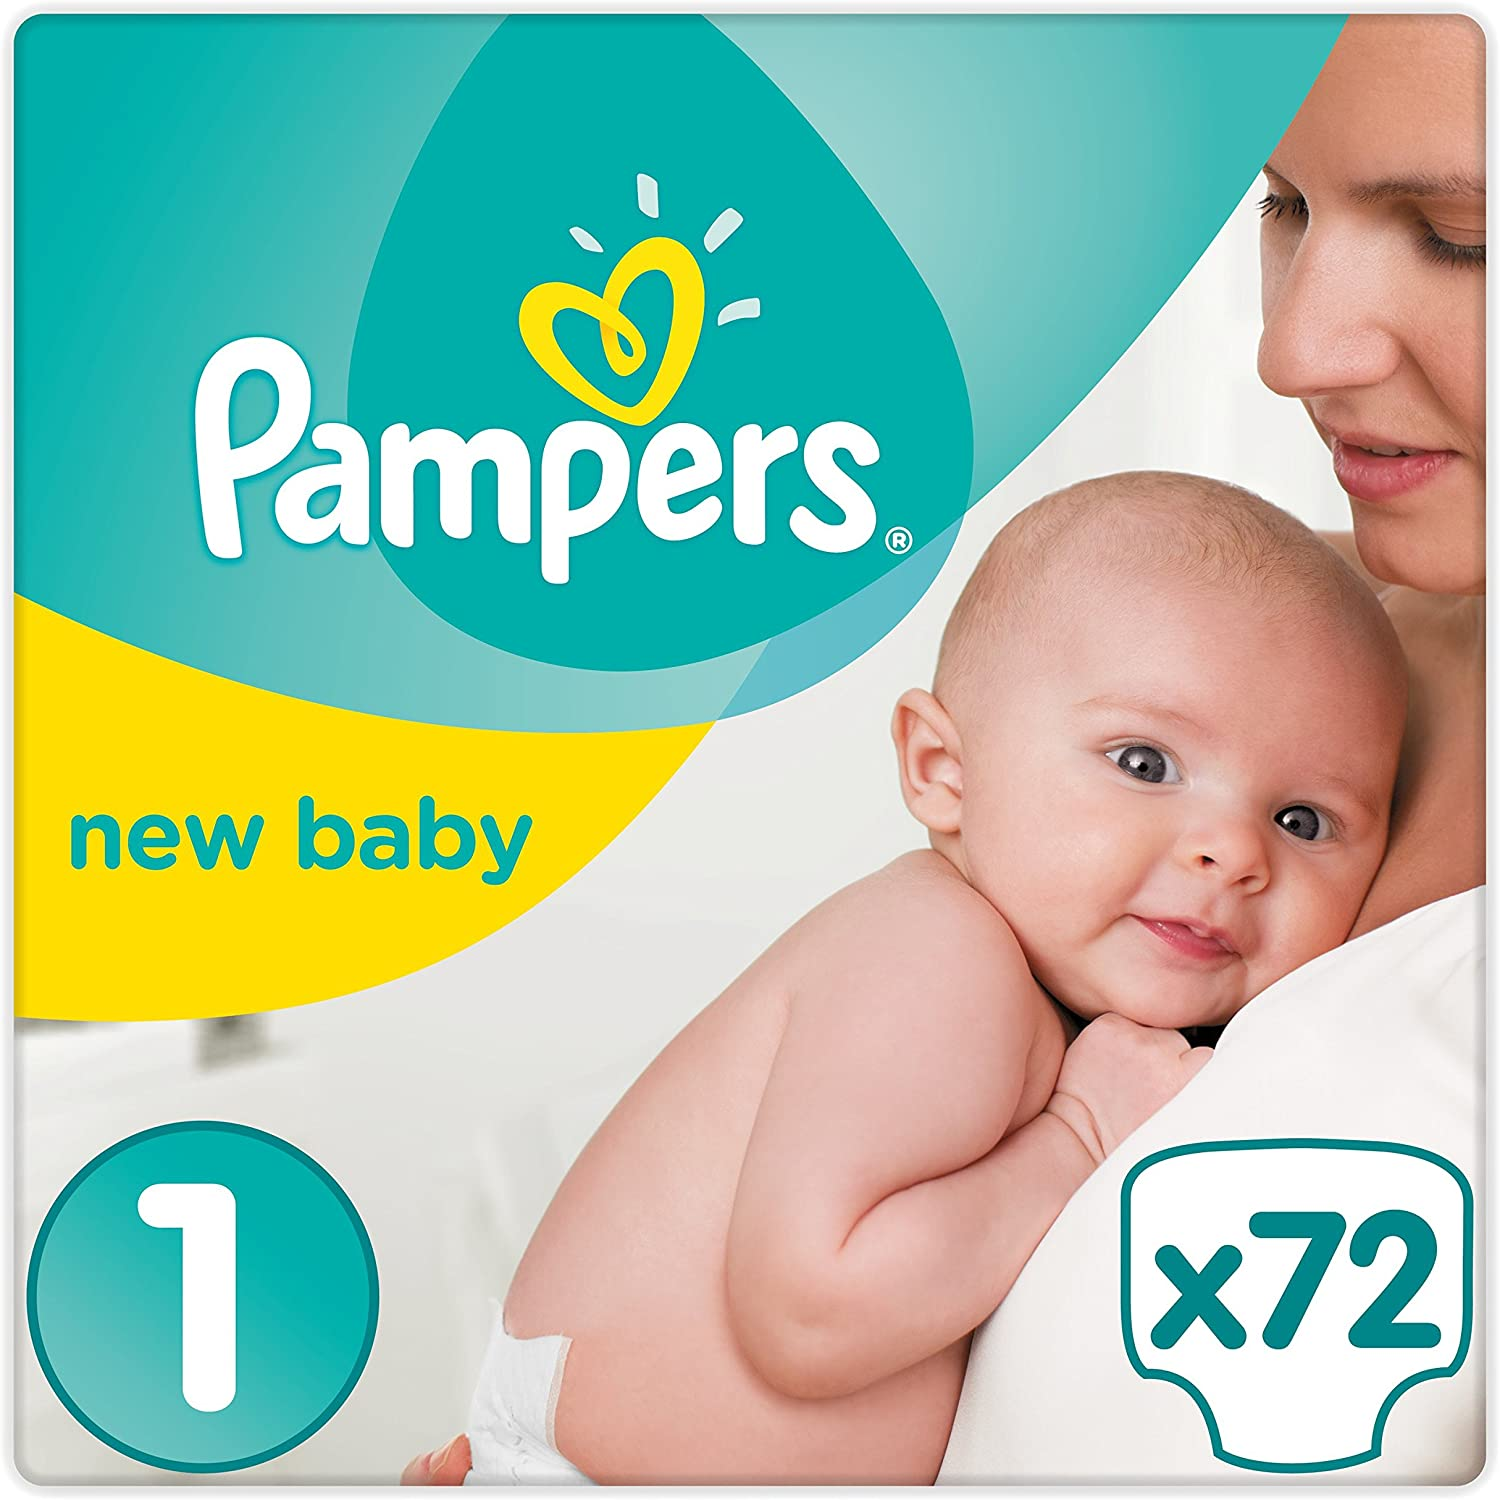 Pampers Premium Protection New Baby Nappies Size 1 Newborn (2-5 kg), Half Month Box, Pack of 1 (1 x 72 Pieces).